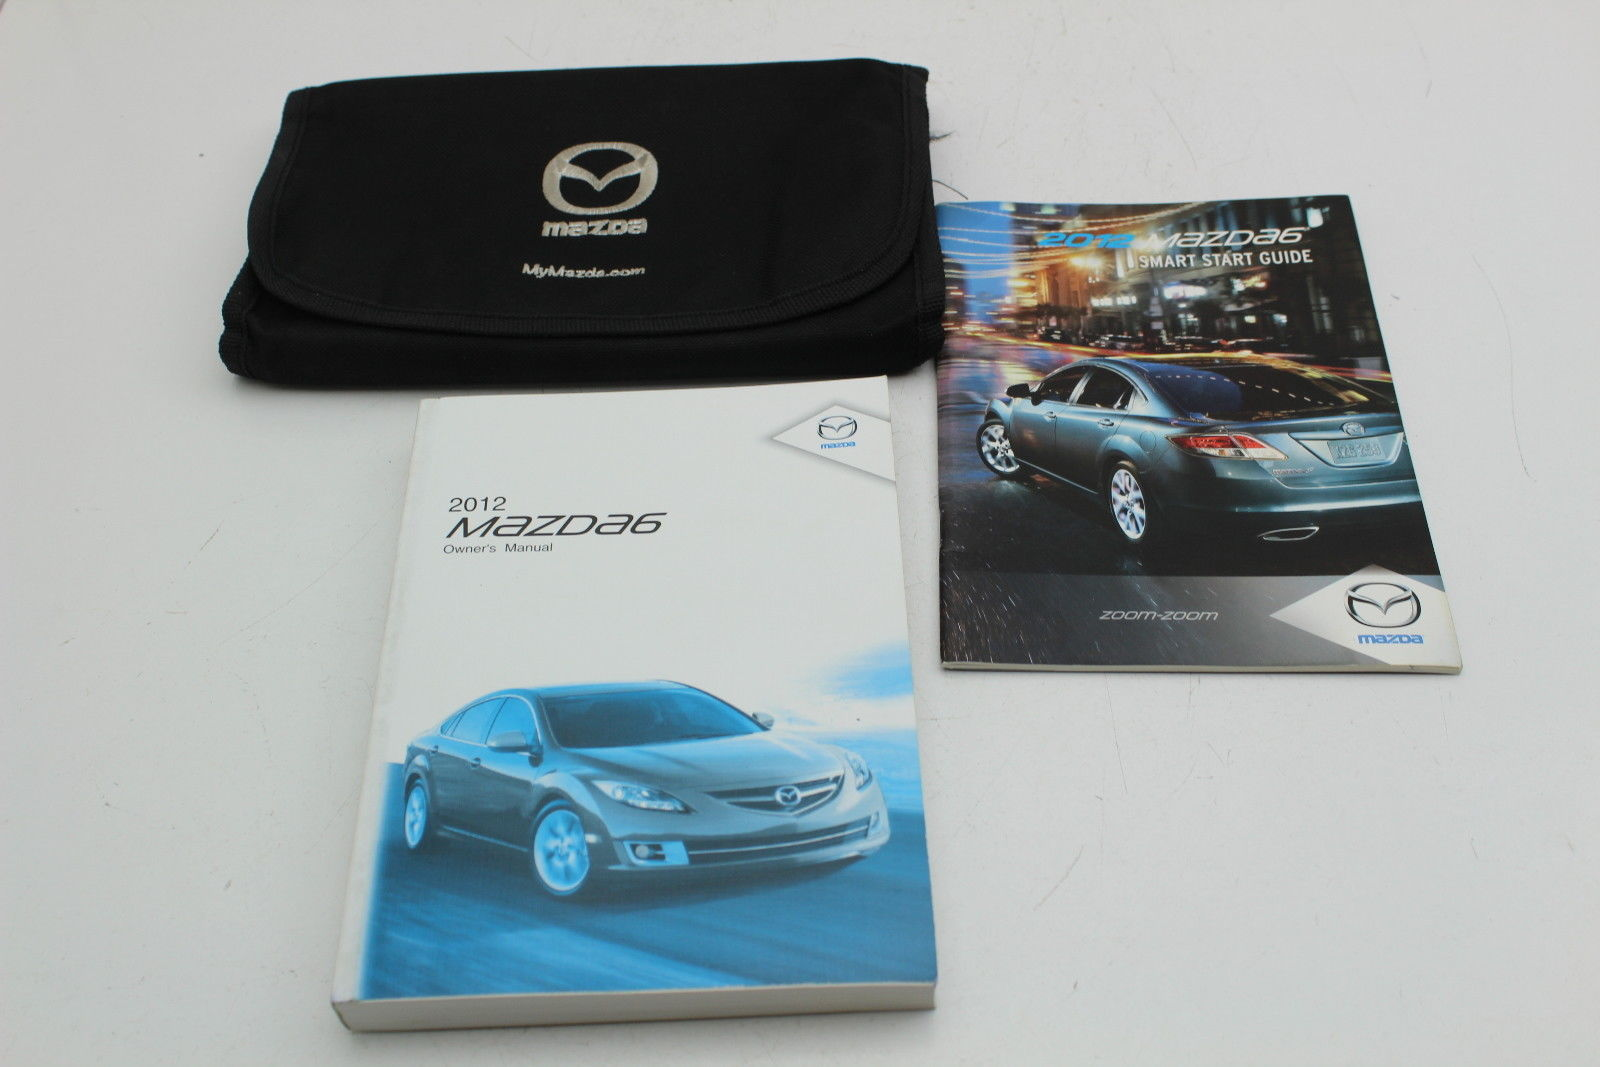 12 Mazda 6 Vehicle Owners Manual Handbook and 50 similar items. S l1600